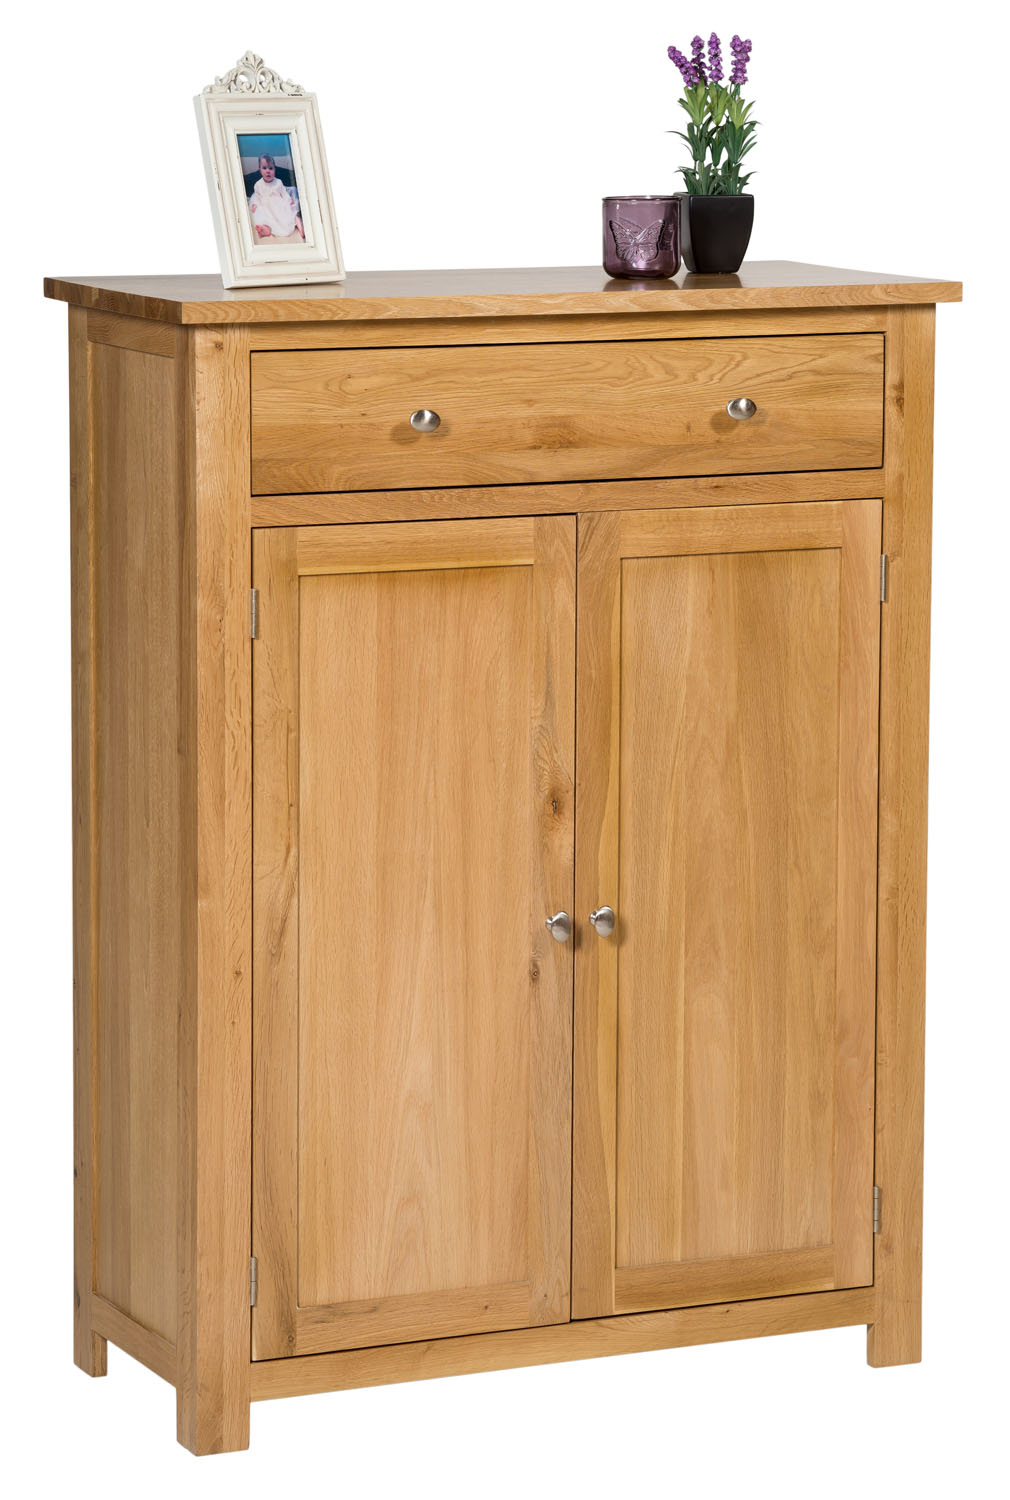 Large oak shoe storage cabinet wooden hallway cupboard for Cupboard and drawers